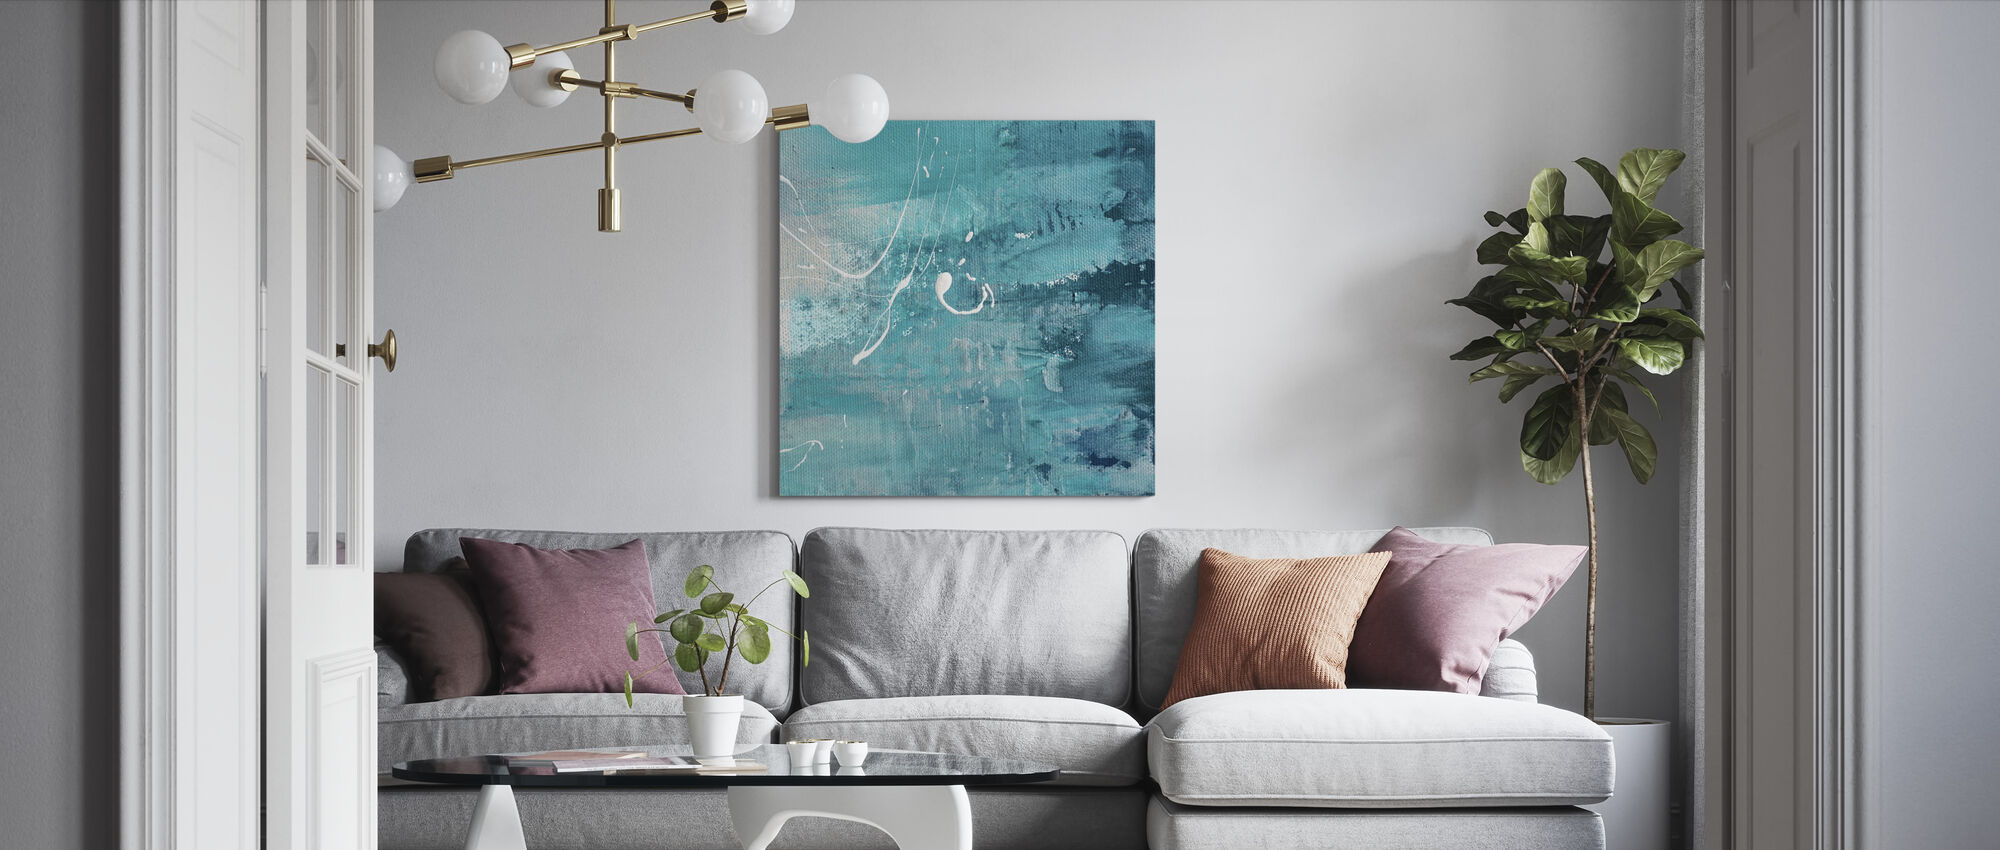 After Turquoise - Canvas print - Living Room